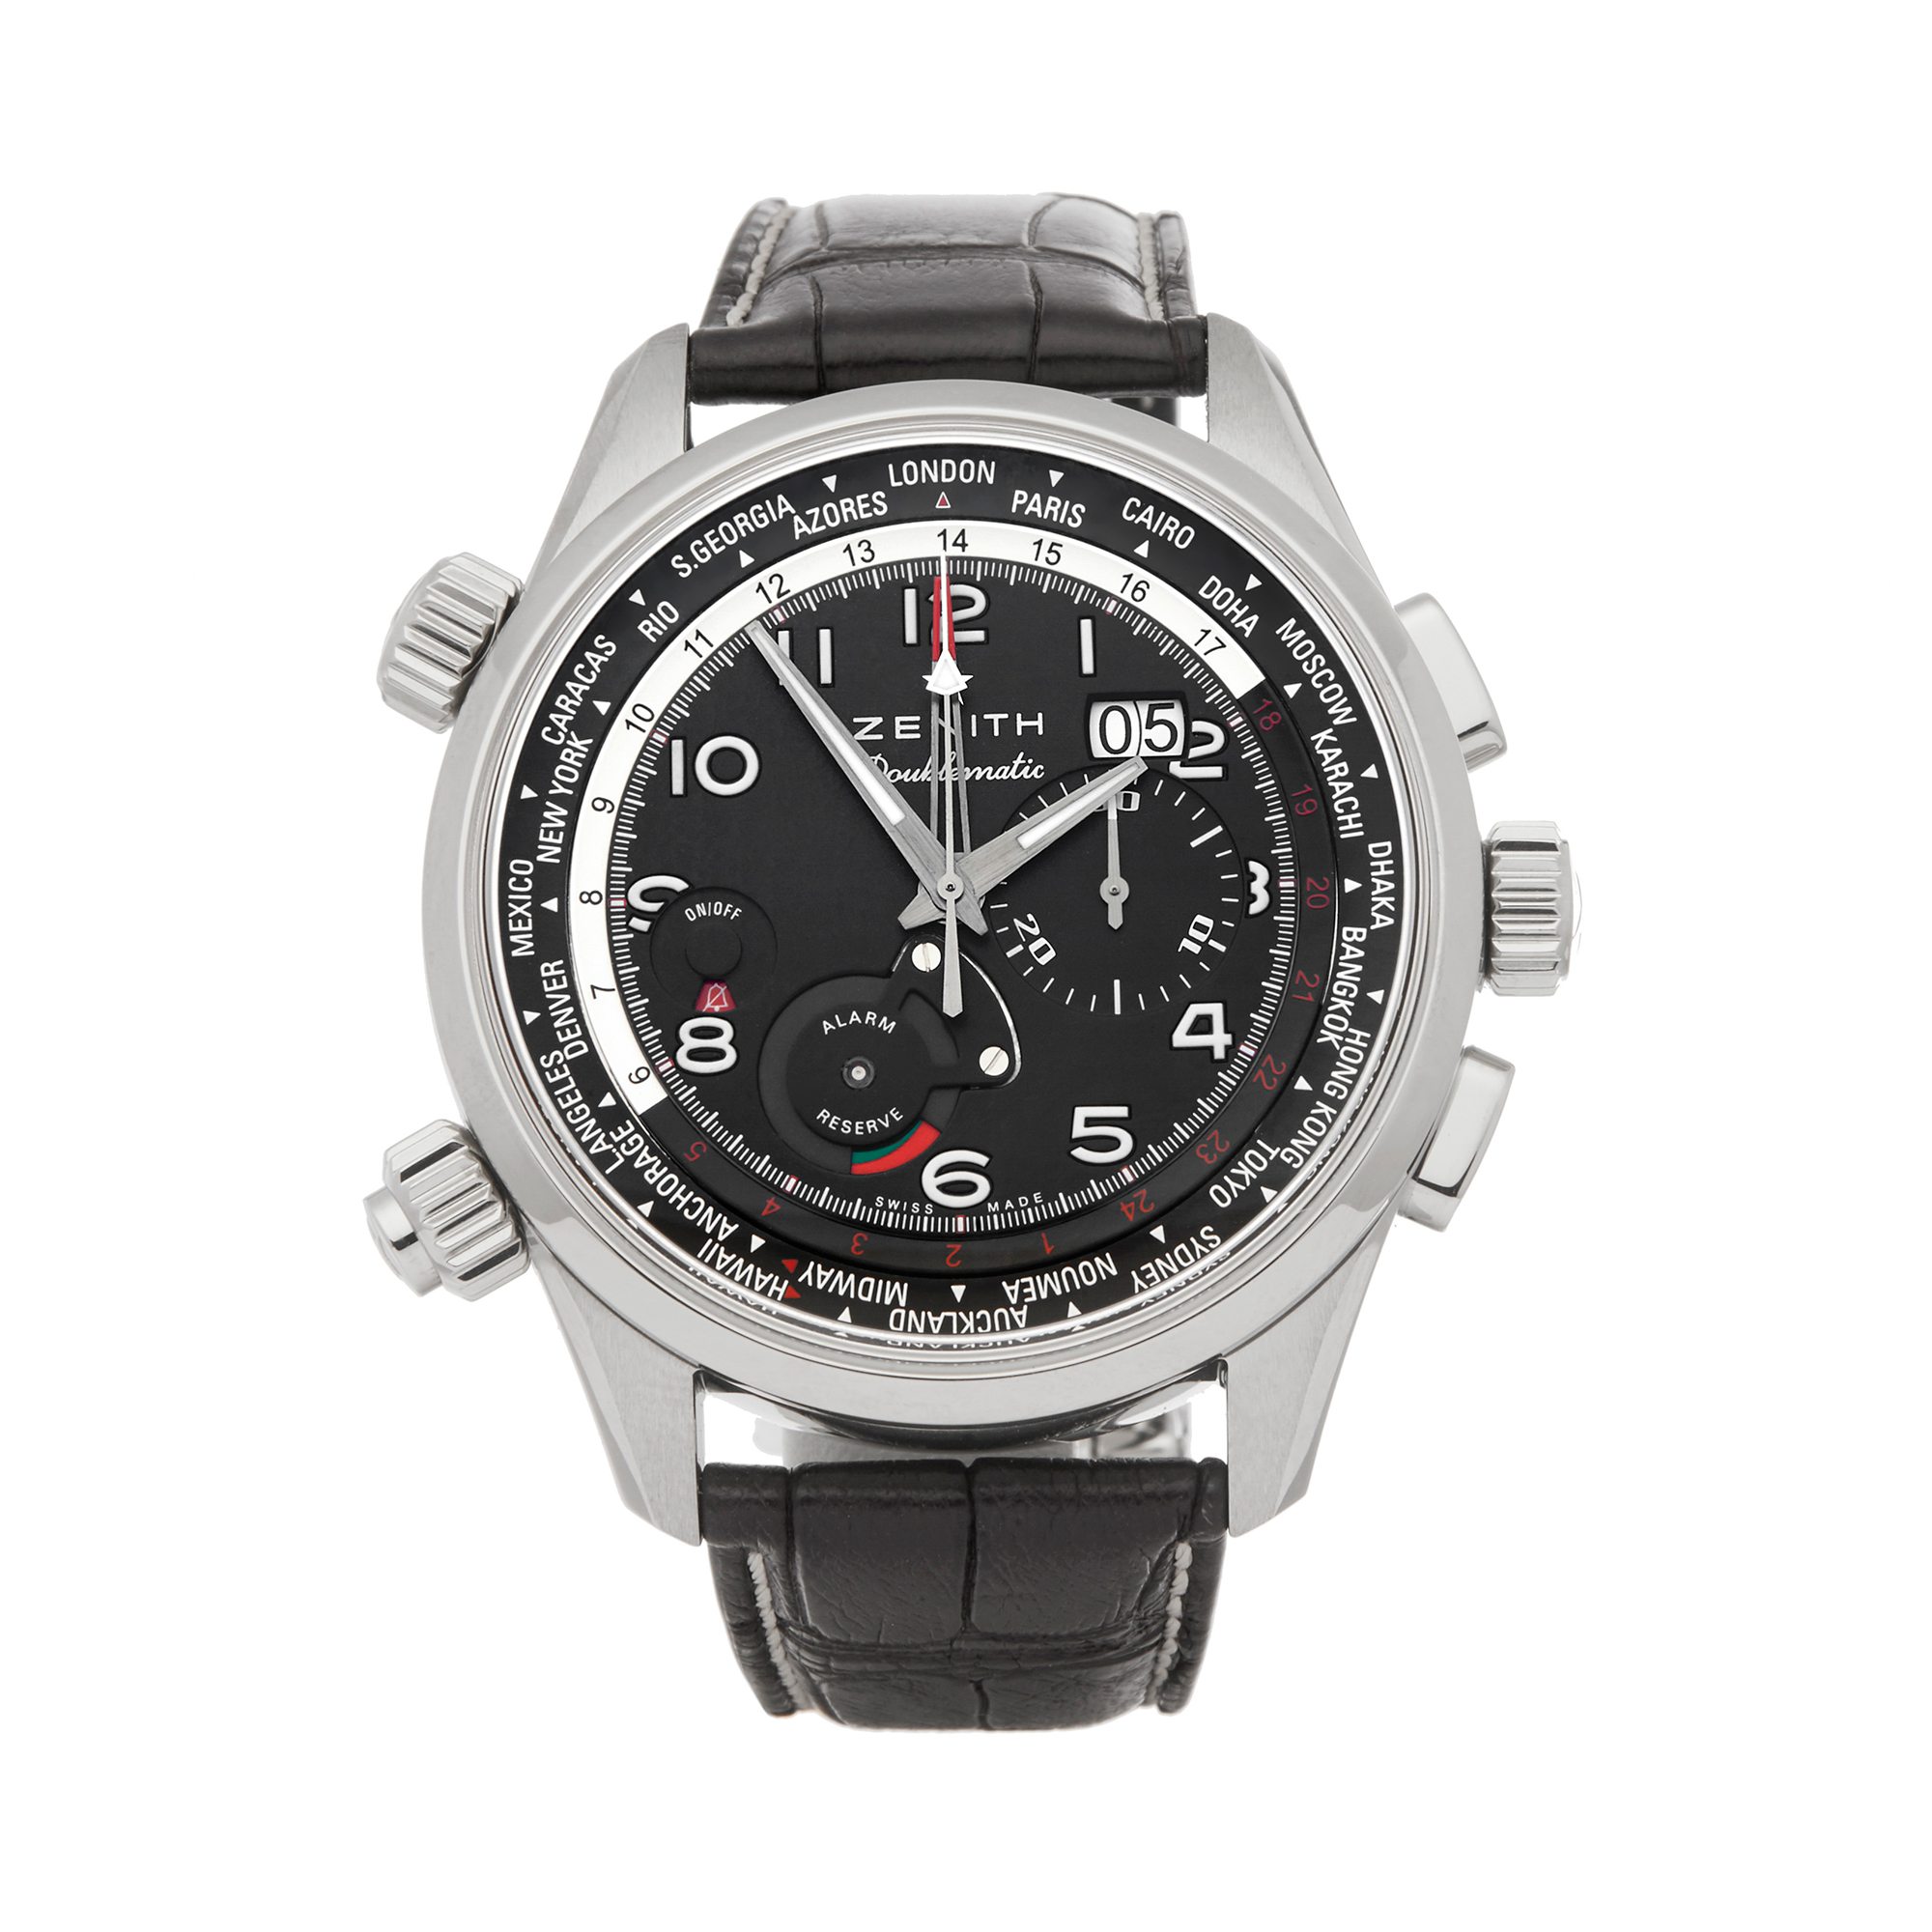 Zenith Doublematic 0 03.2400.4046/21.C721 Men Stainless Steel Chronograph Watch - Image 7 of 7